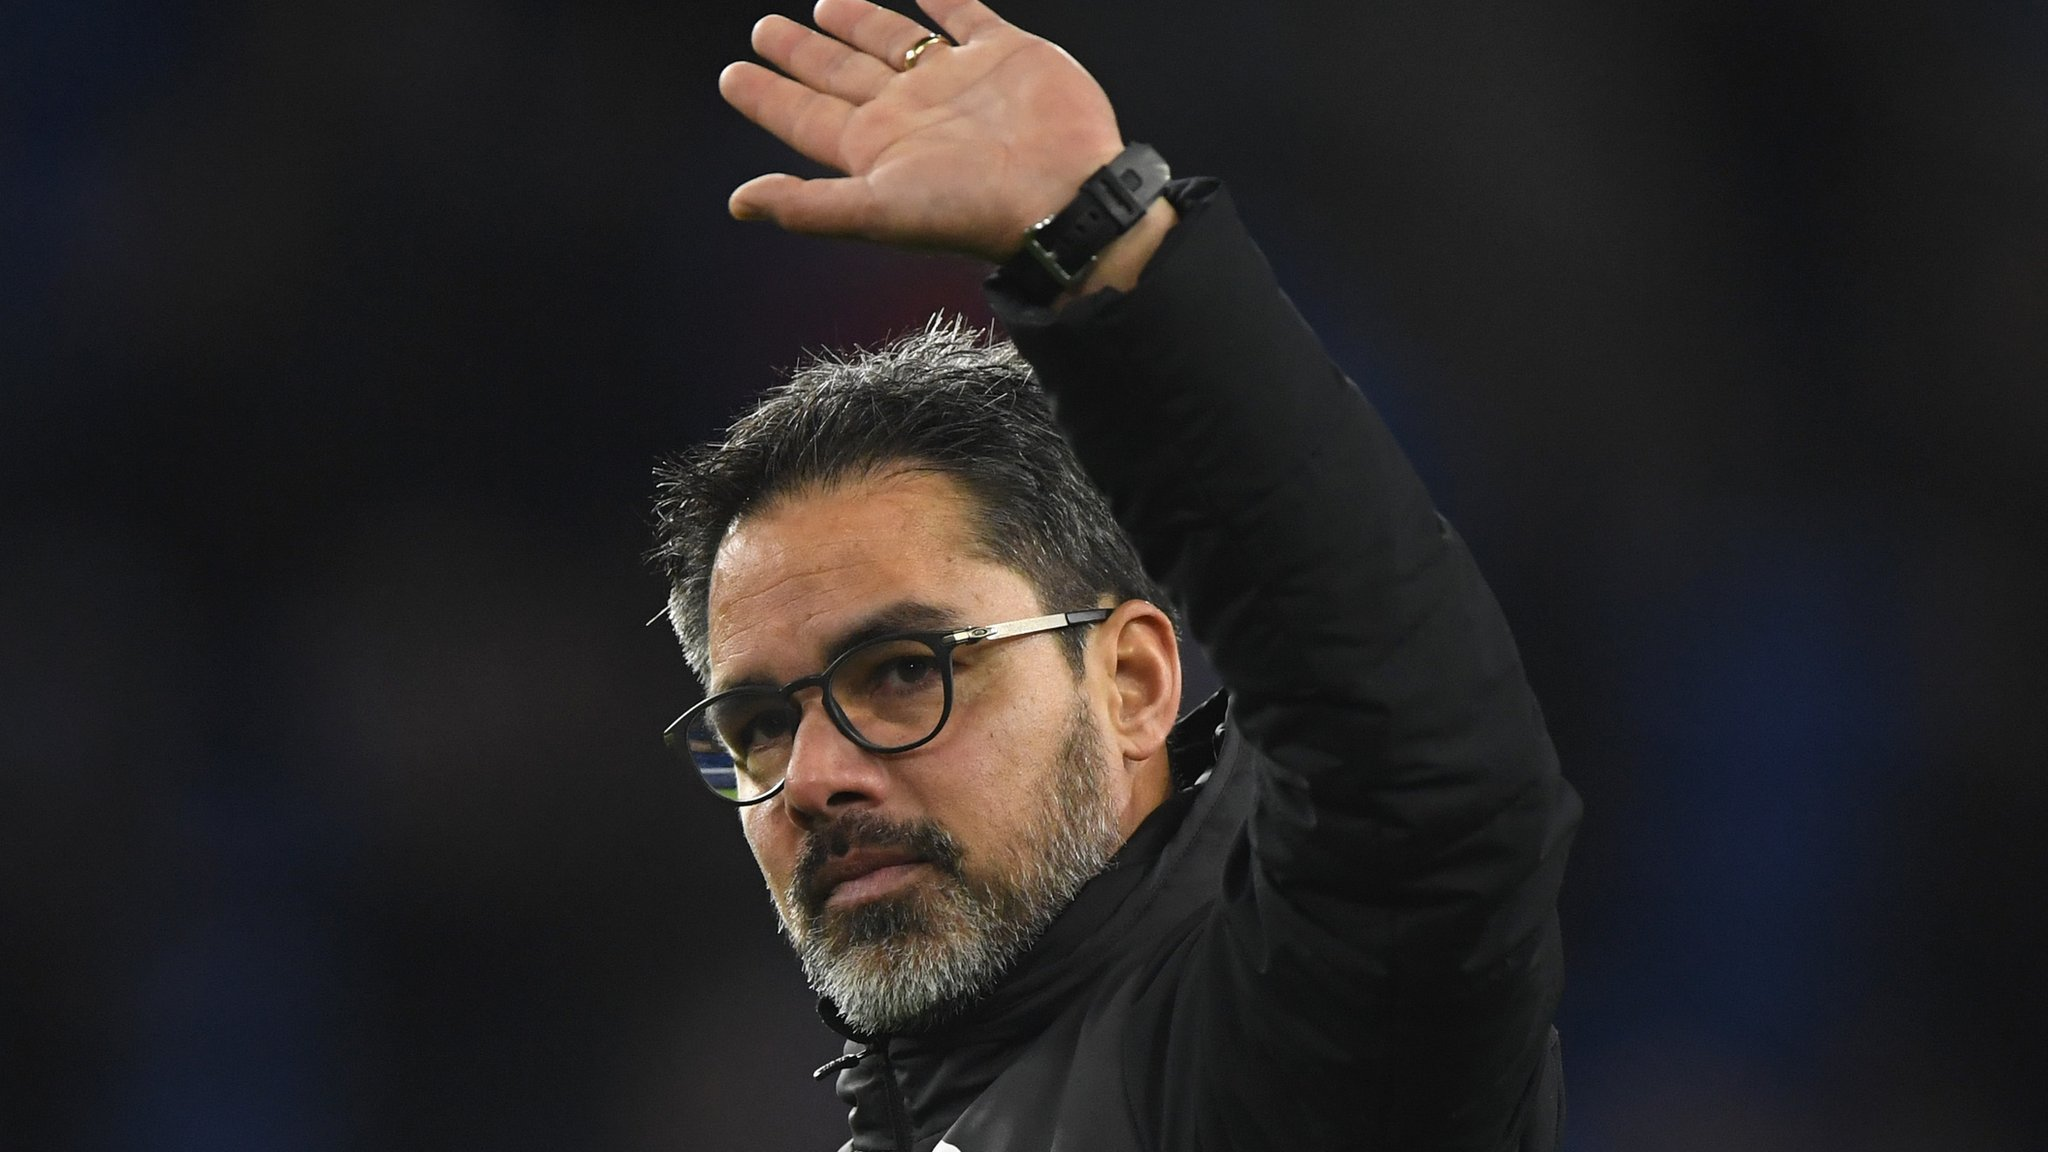 'A sad day' - boss Wagner leaves Huddersfield Town